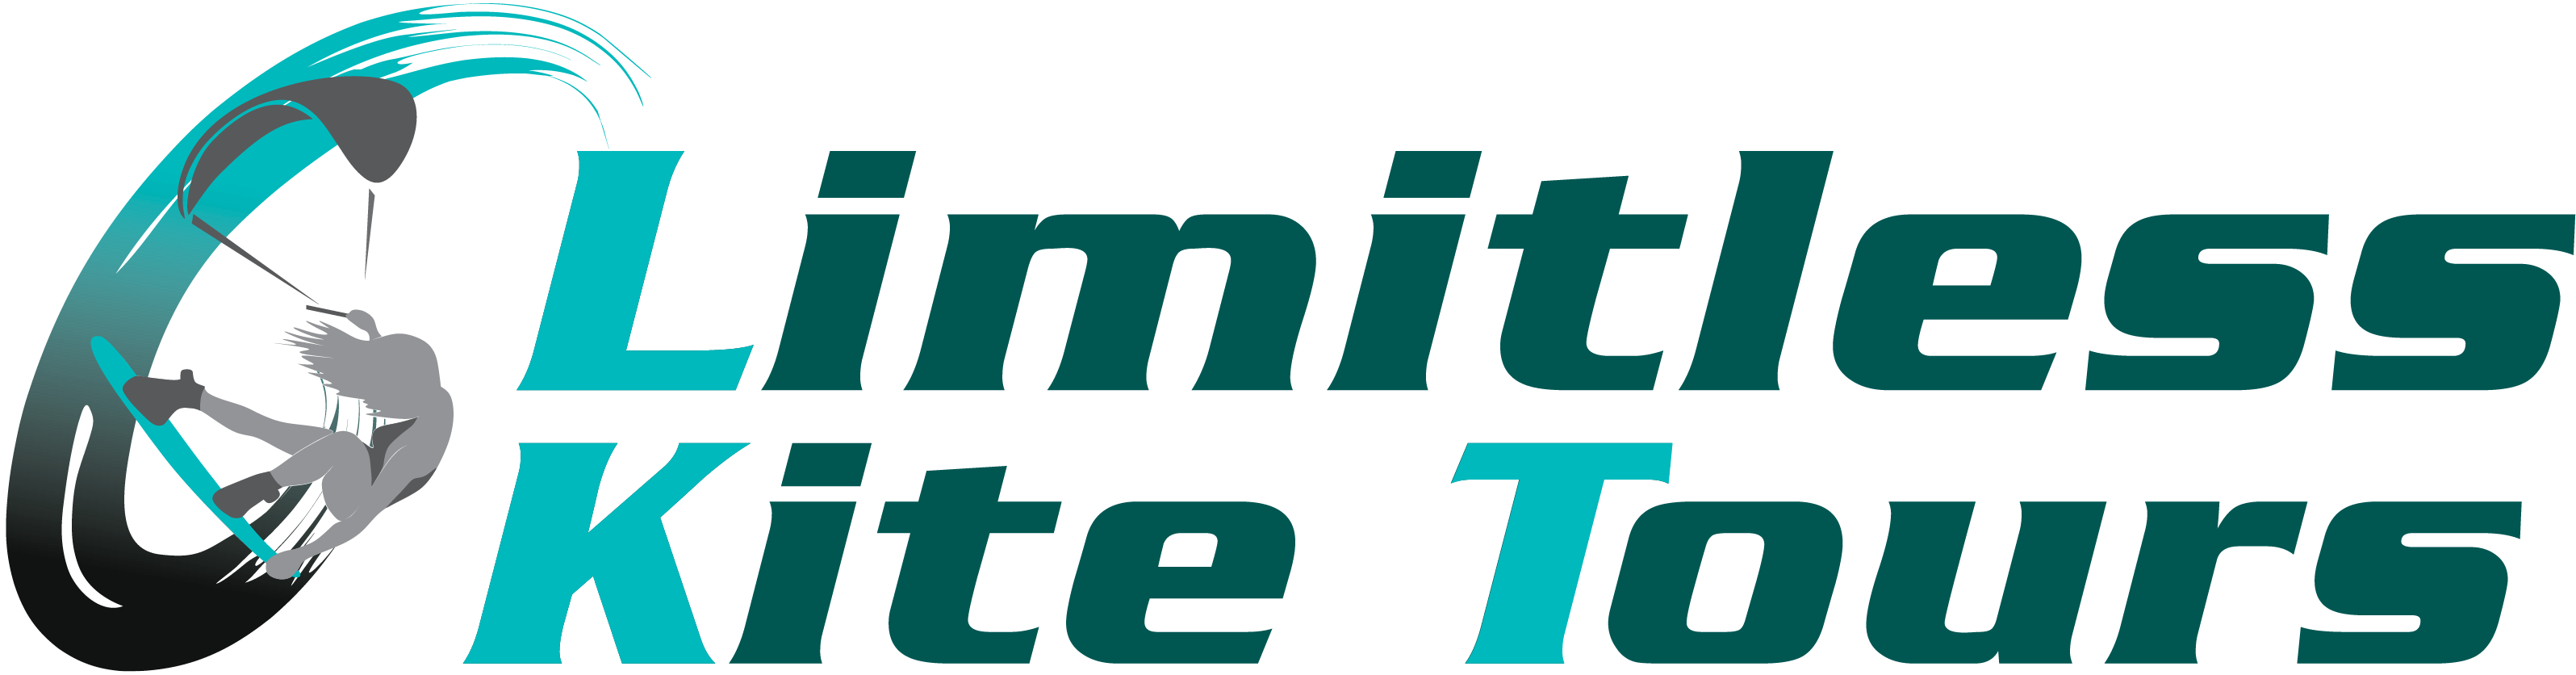 Limitless Kite Tours, LKT logo